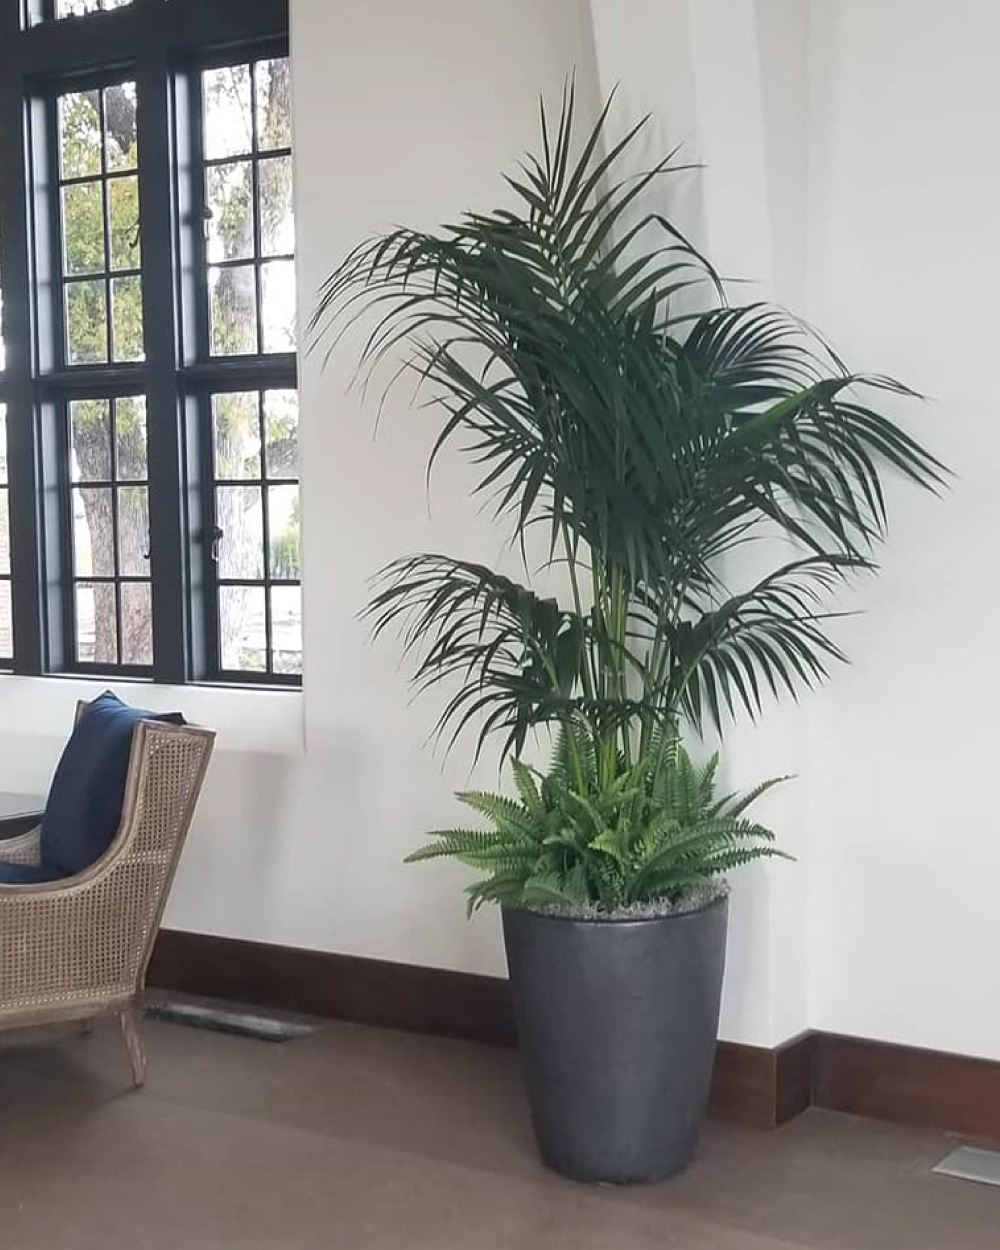 Kentia palm in clubhouse